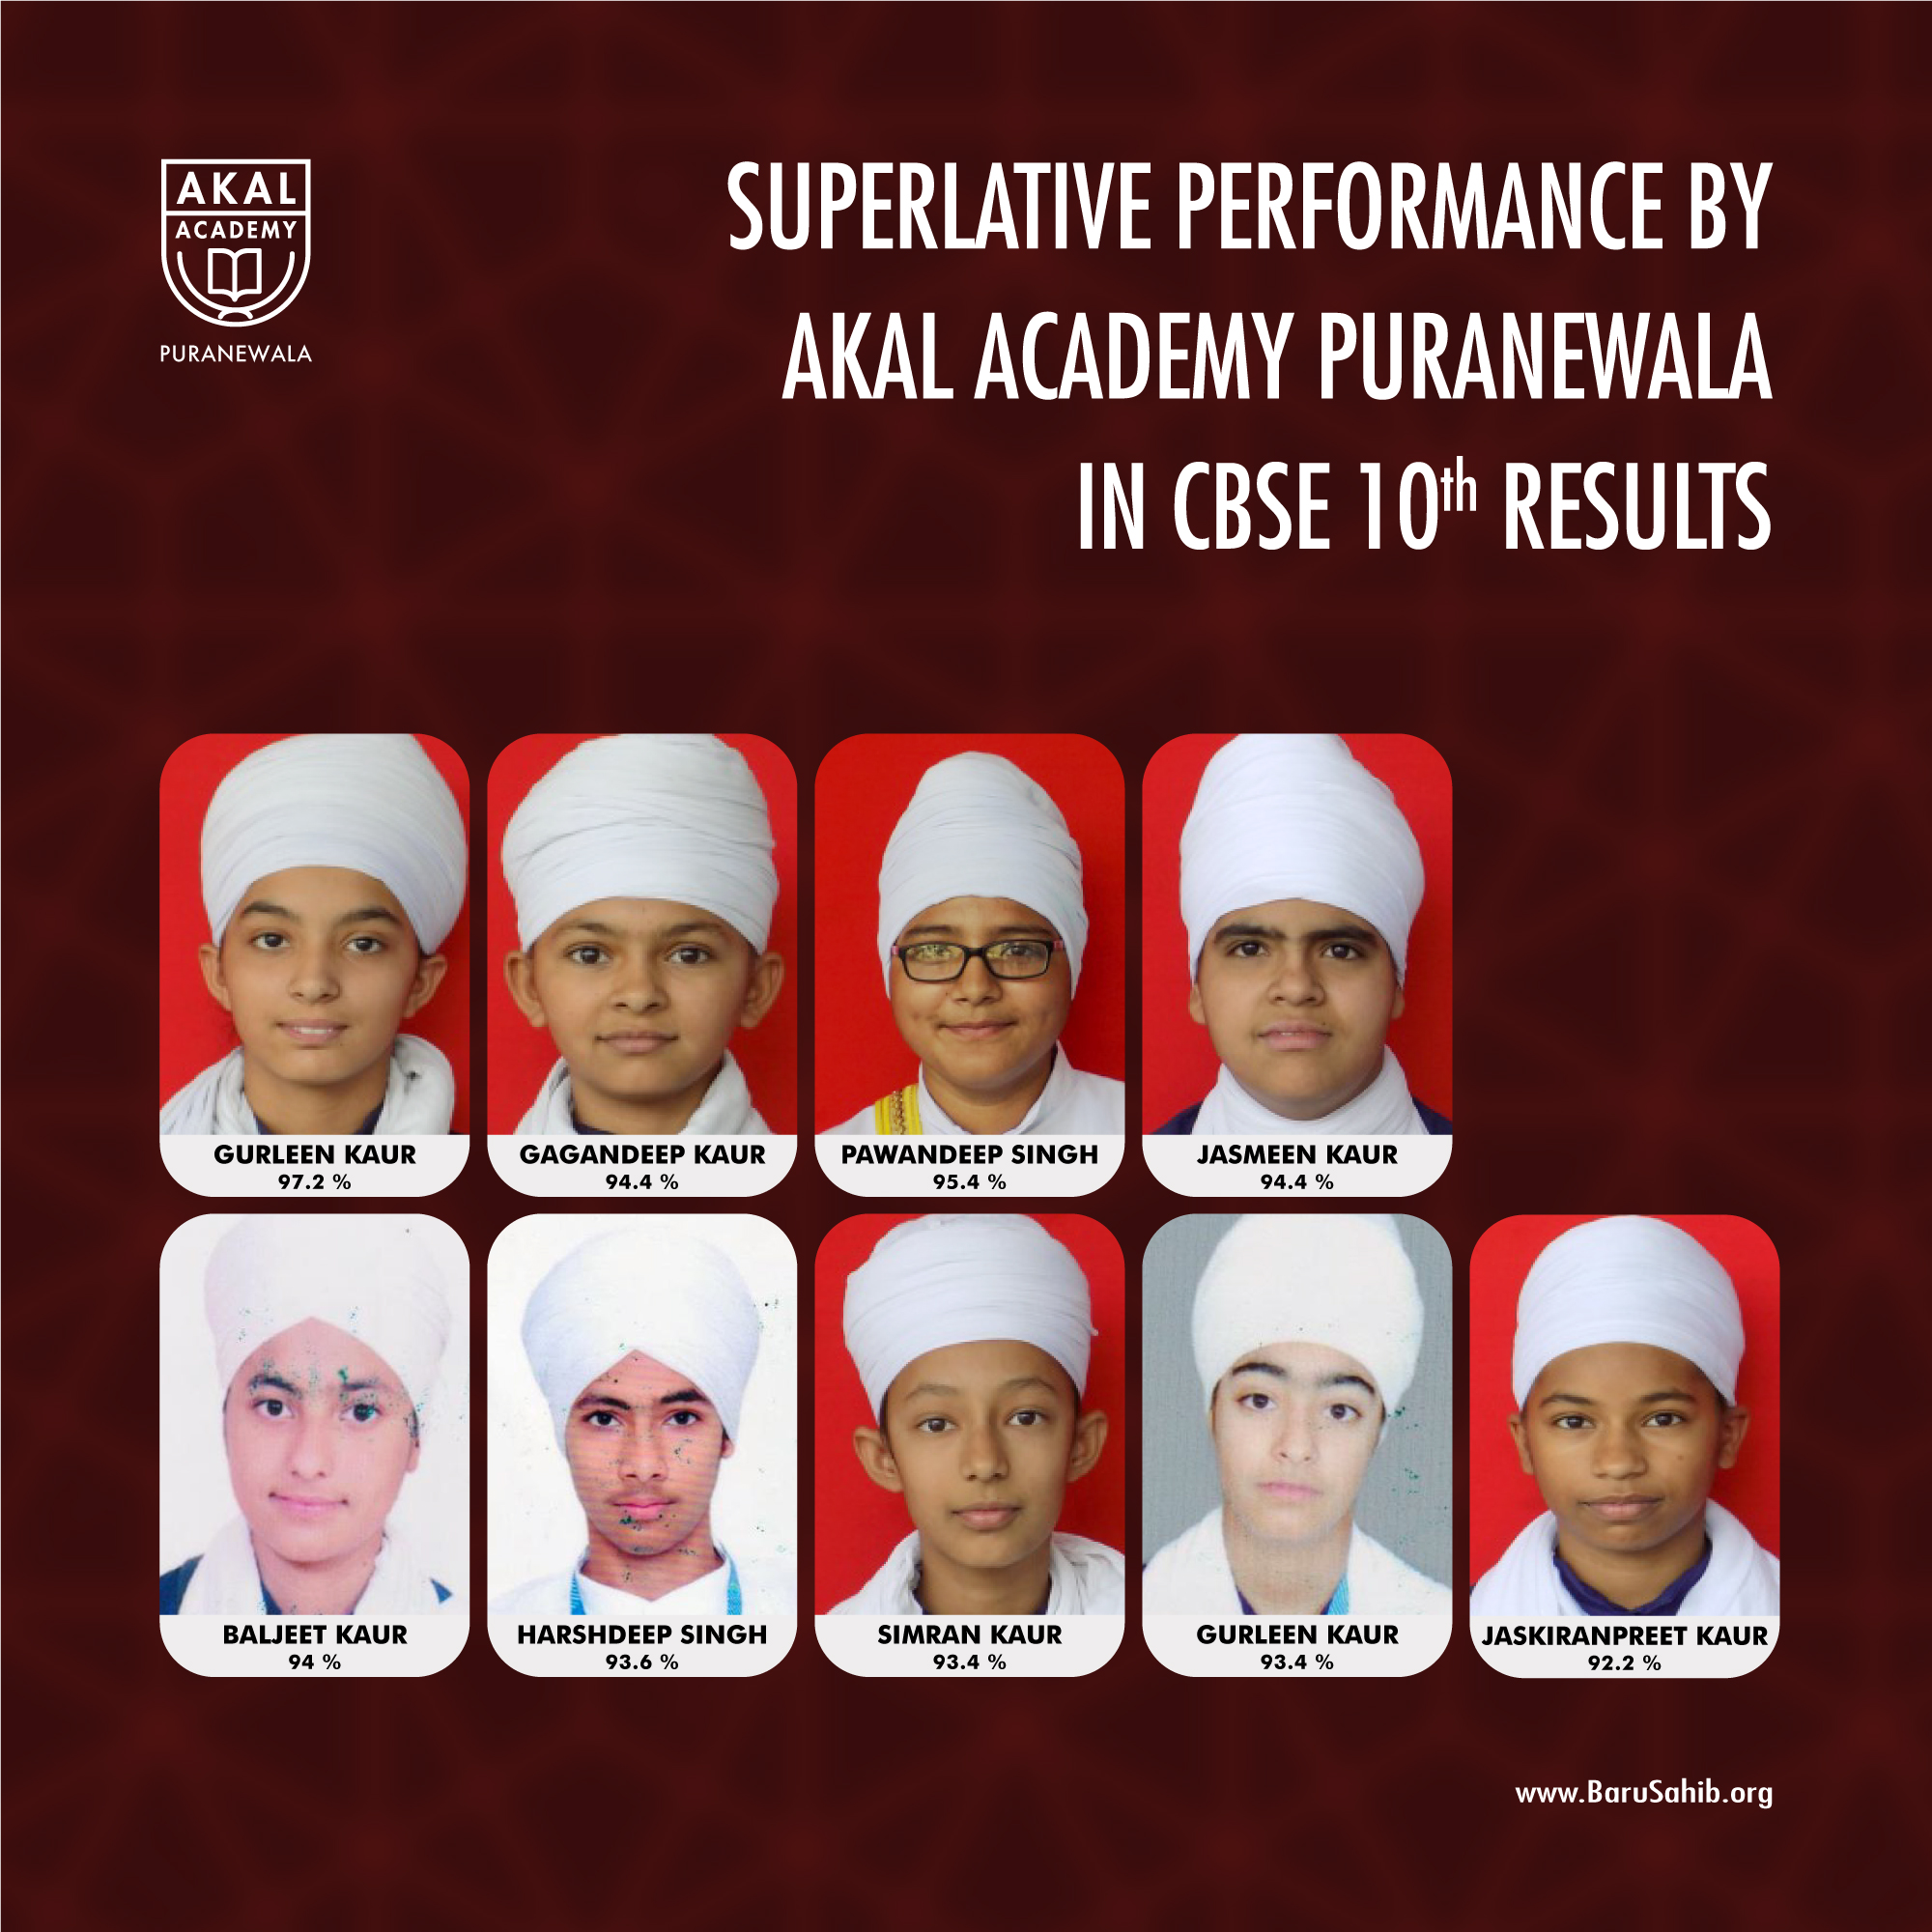 Superlative Performance by Akal Academy Puranewala in CBSE 10th Results